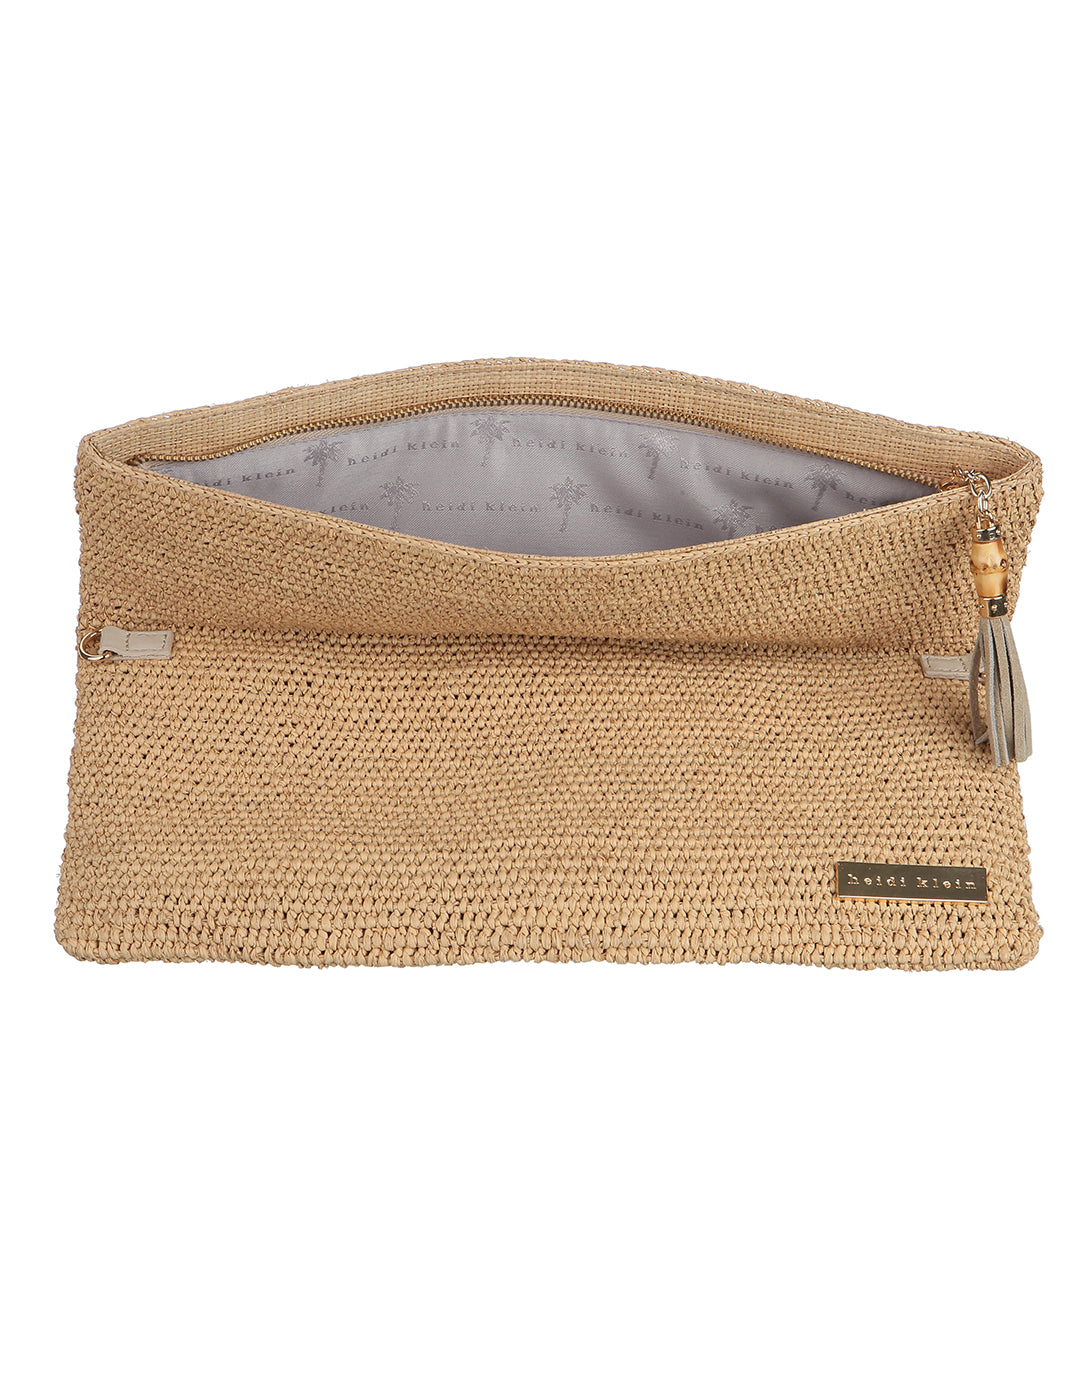 Heidi Klein Savannah Bay Raffia Clutch Bag - Natural